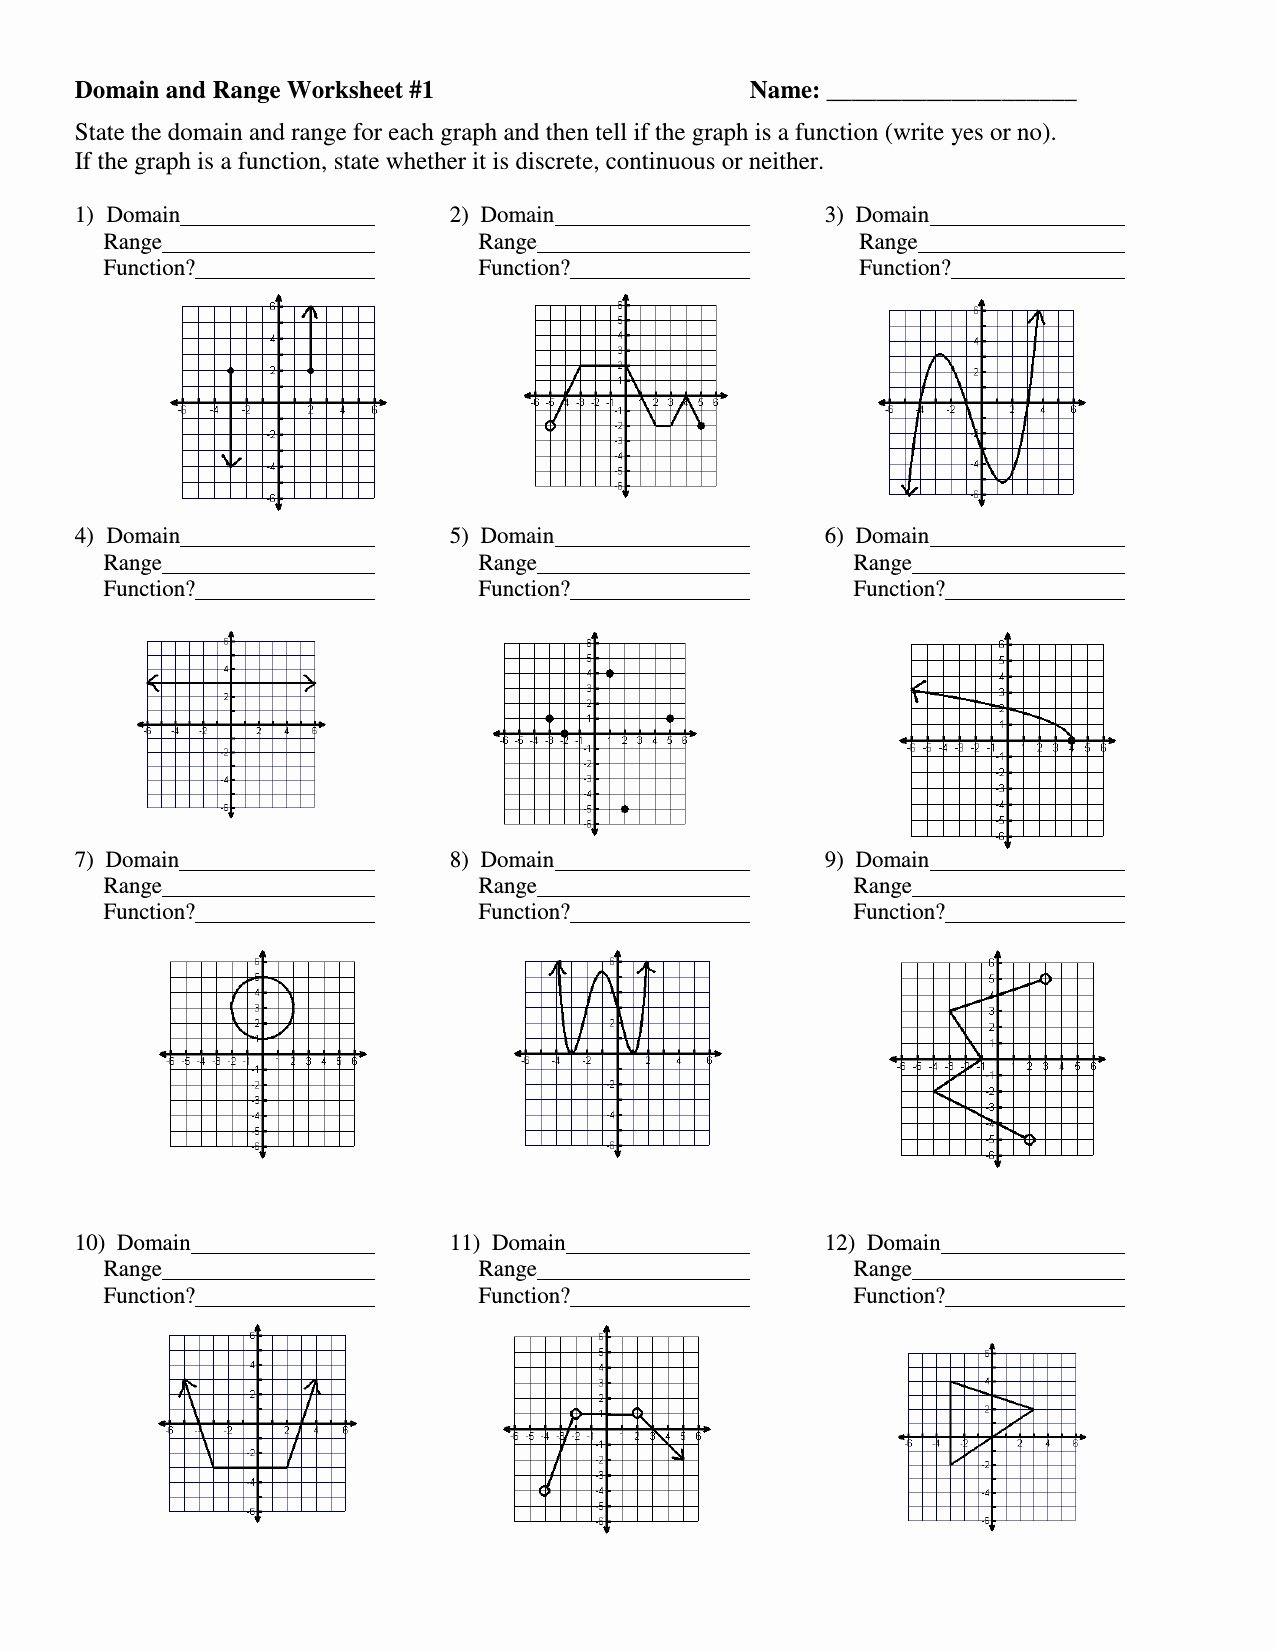 Domain and Range Worksheet Answers Inspirational Domain and Range Graph Worksheet Answers Fresh 10 Unique